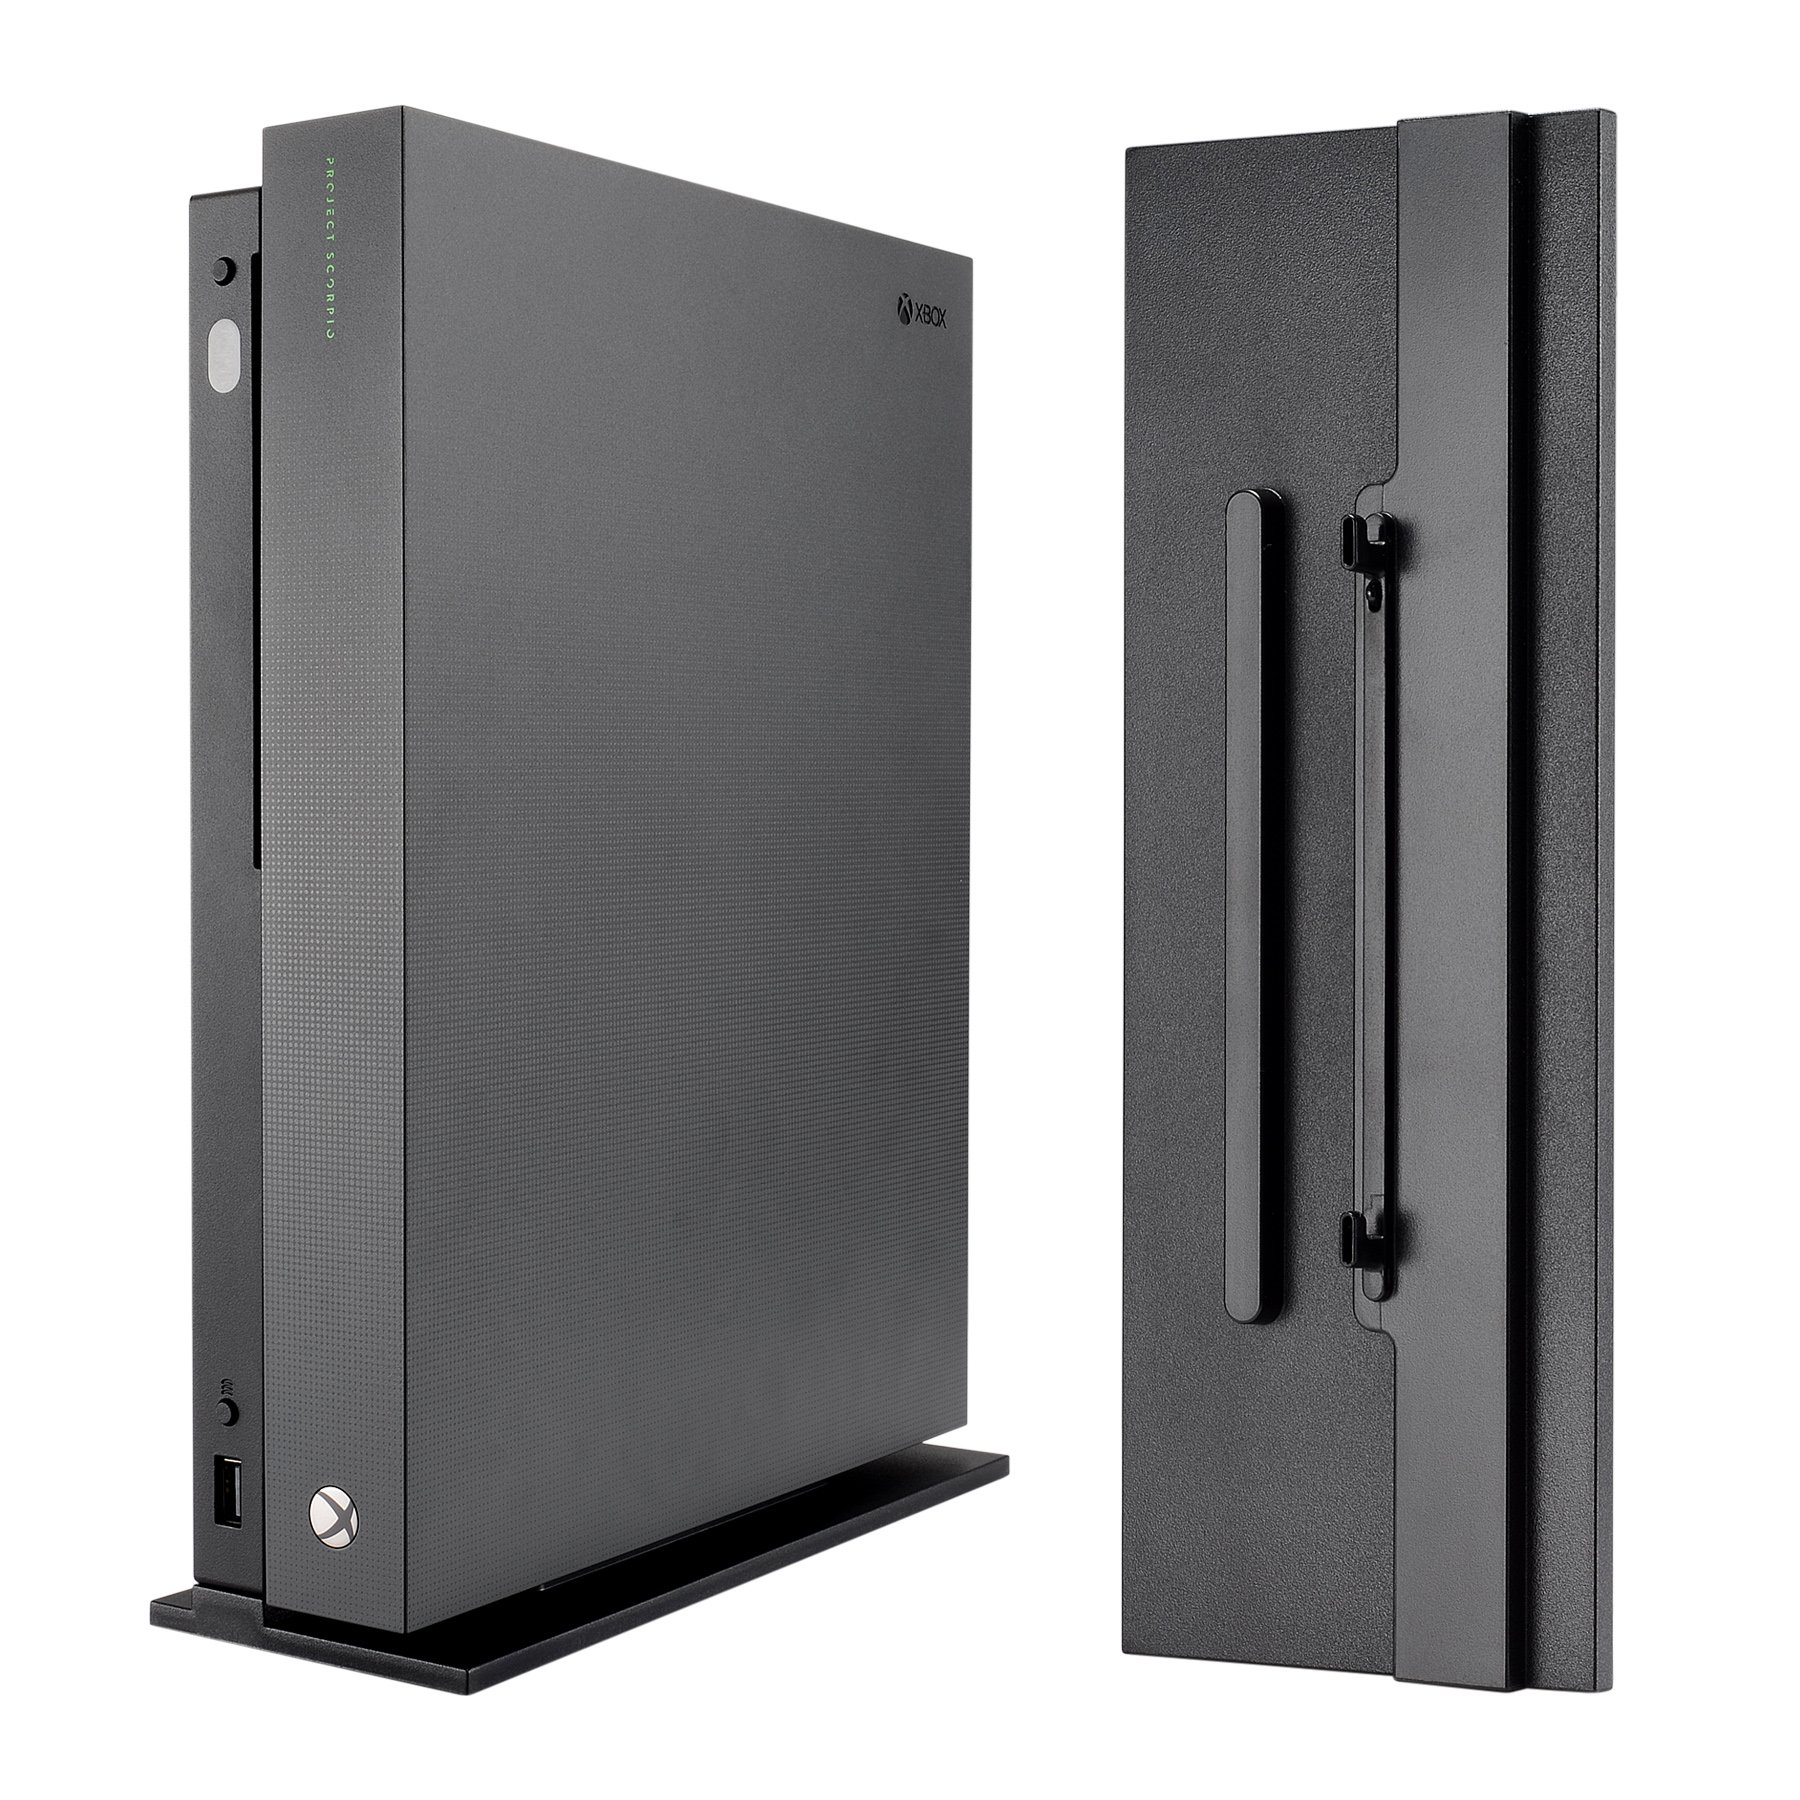 eXtremeRate Vertical Console Stand for Microsoft Xbox One X - Black by eXtremeRate